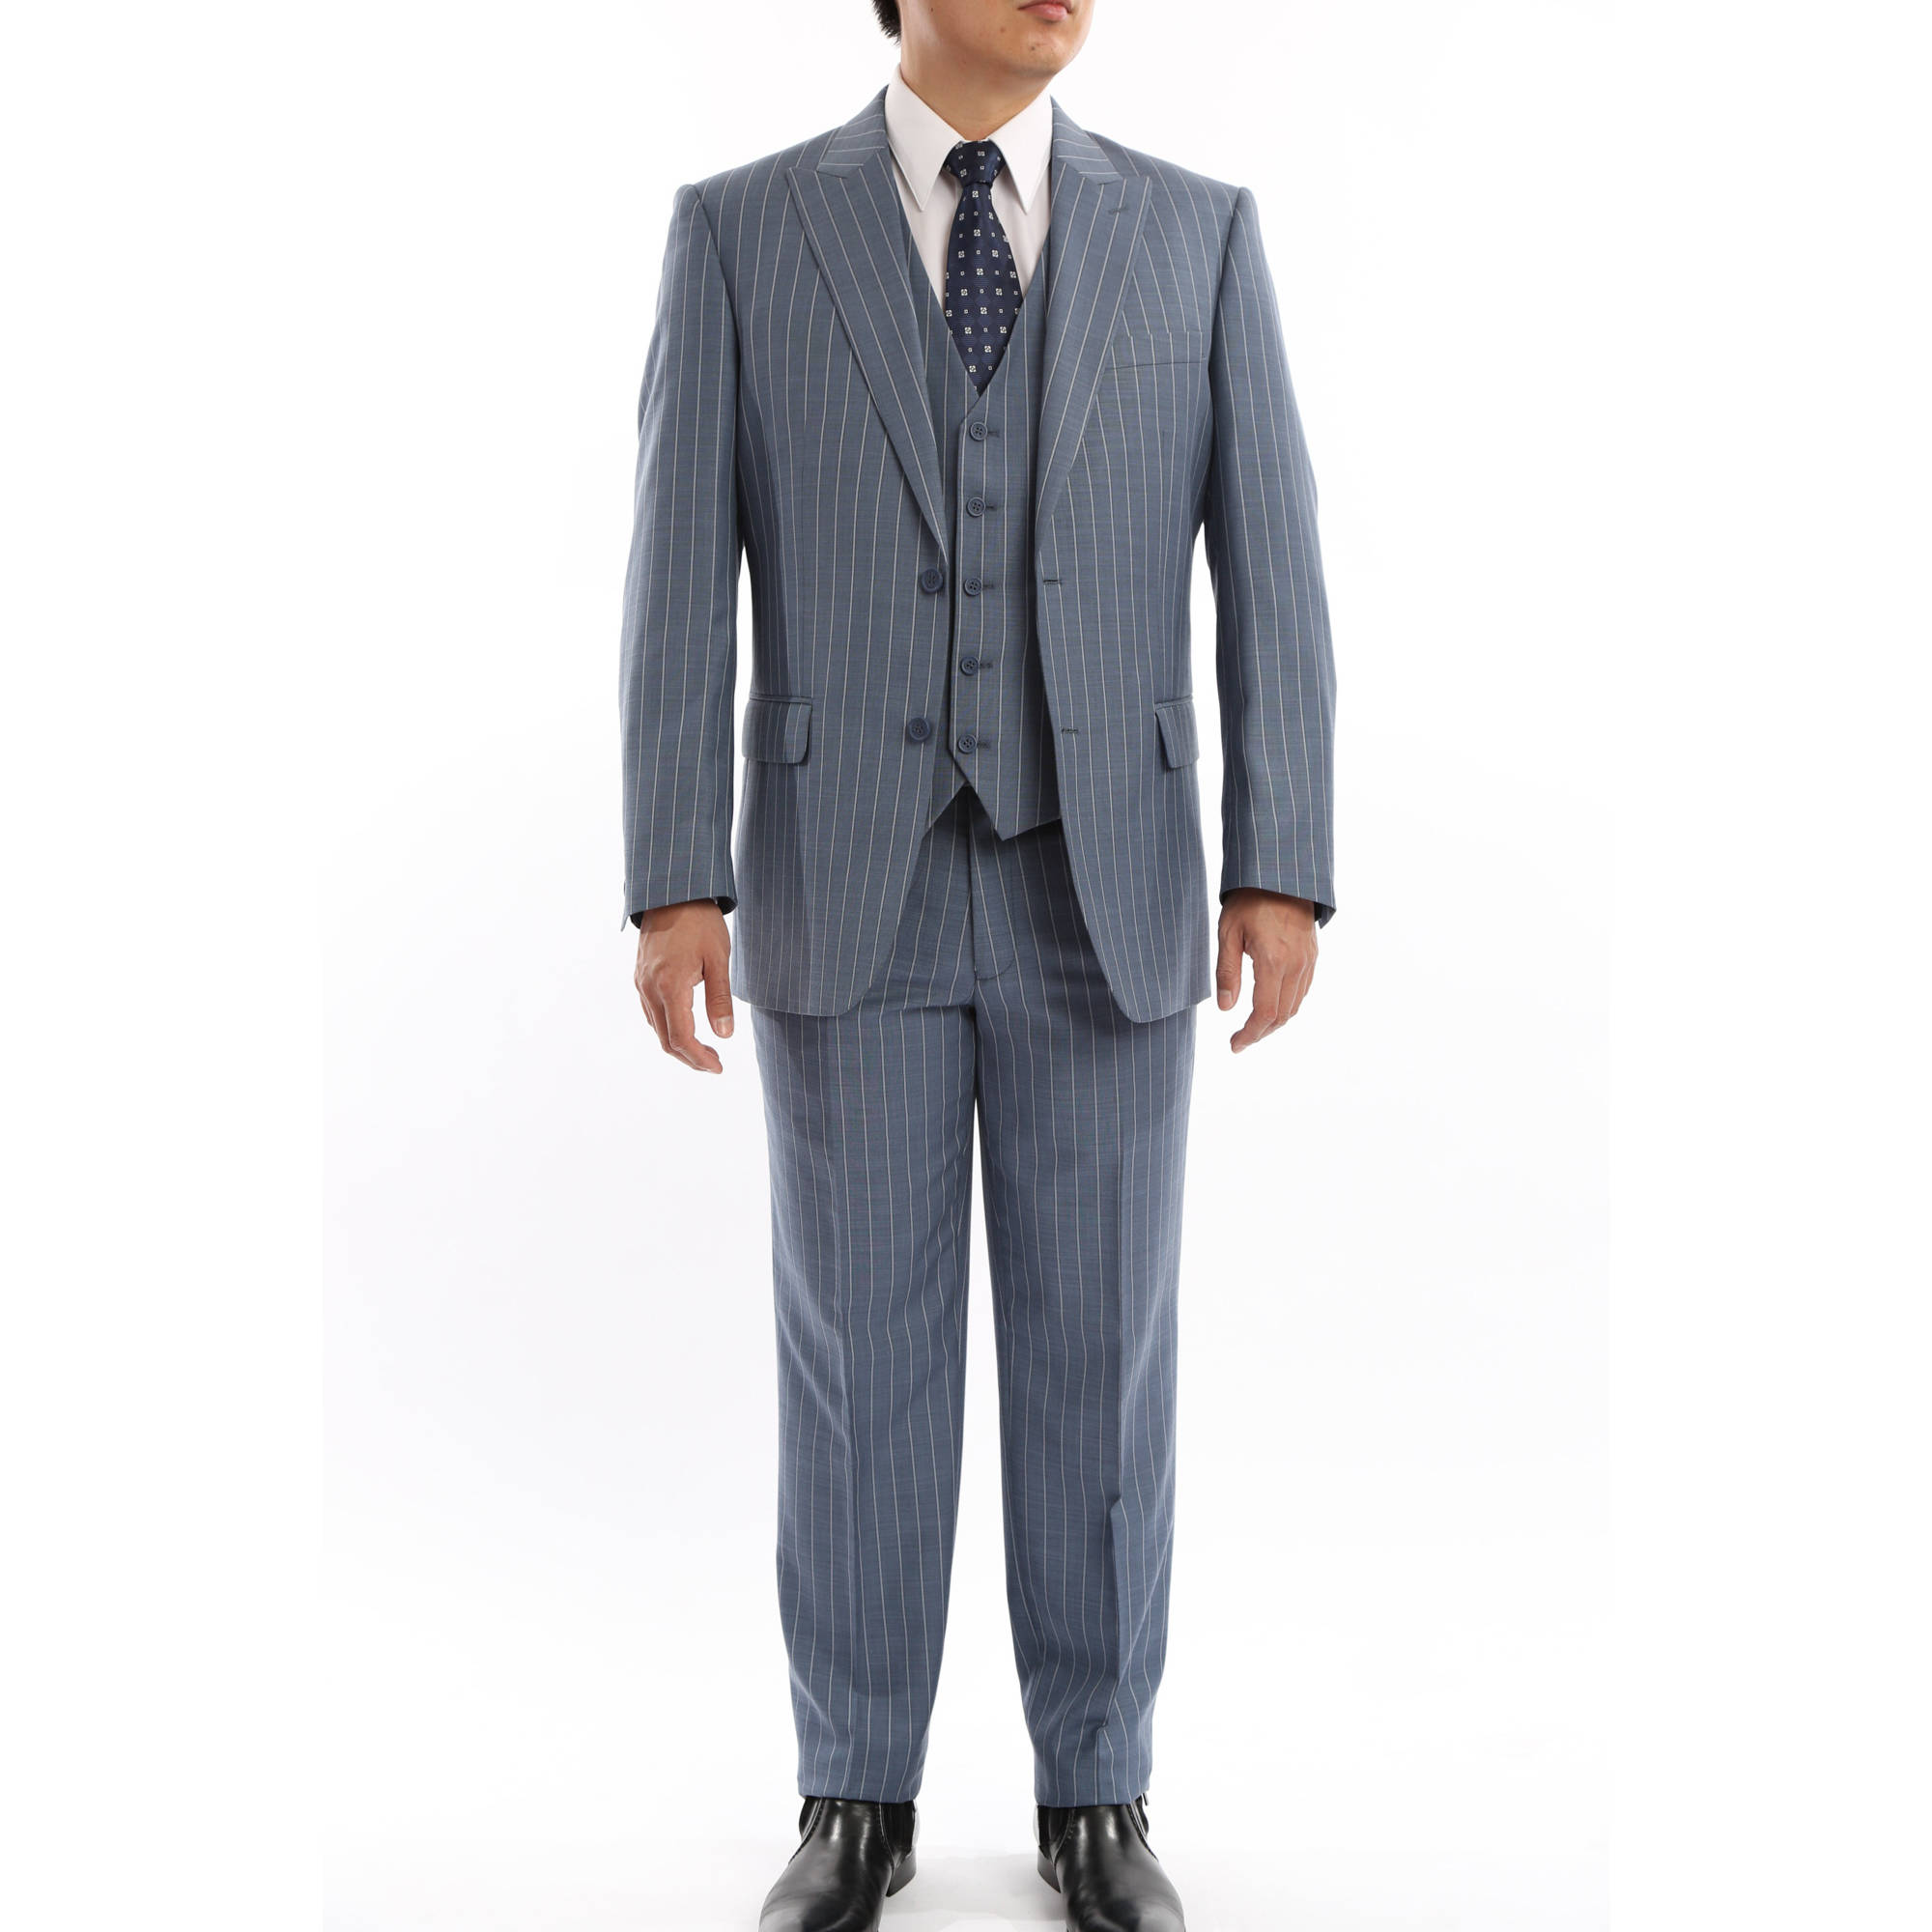 Verno Men's Blue and Grey Striped Classic Fit Italian Styled Three Piece Suit